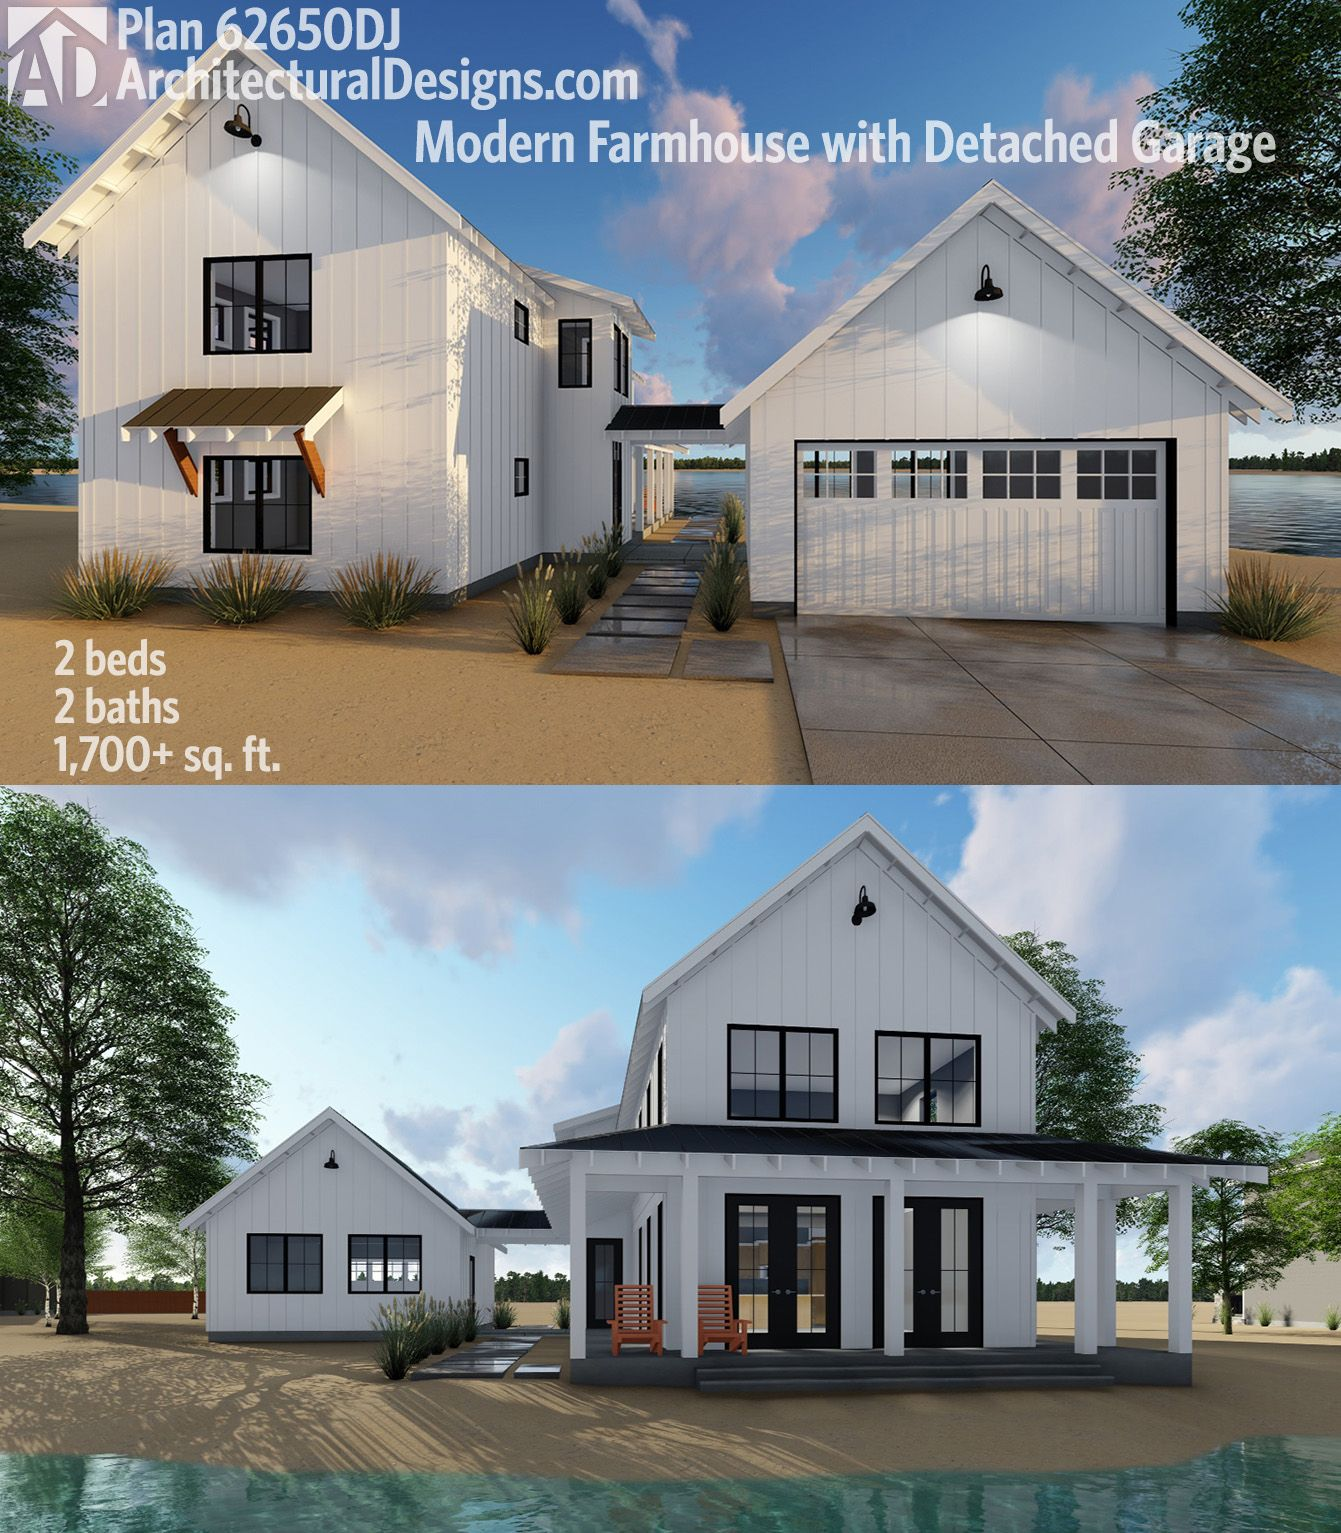 Plan 62650DJ: Modern Farmhouse Plan With 2 Beds And Semi Detached Garage